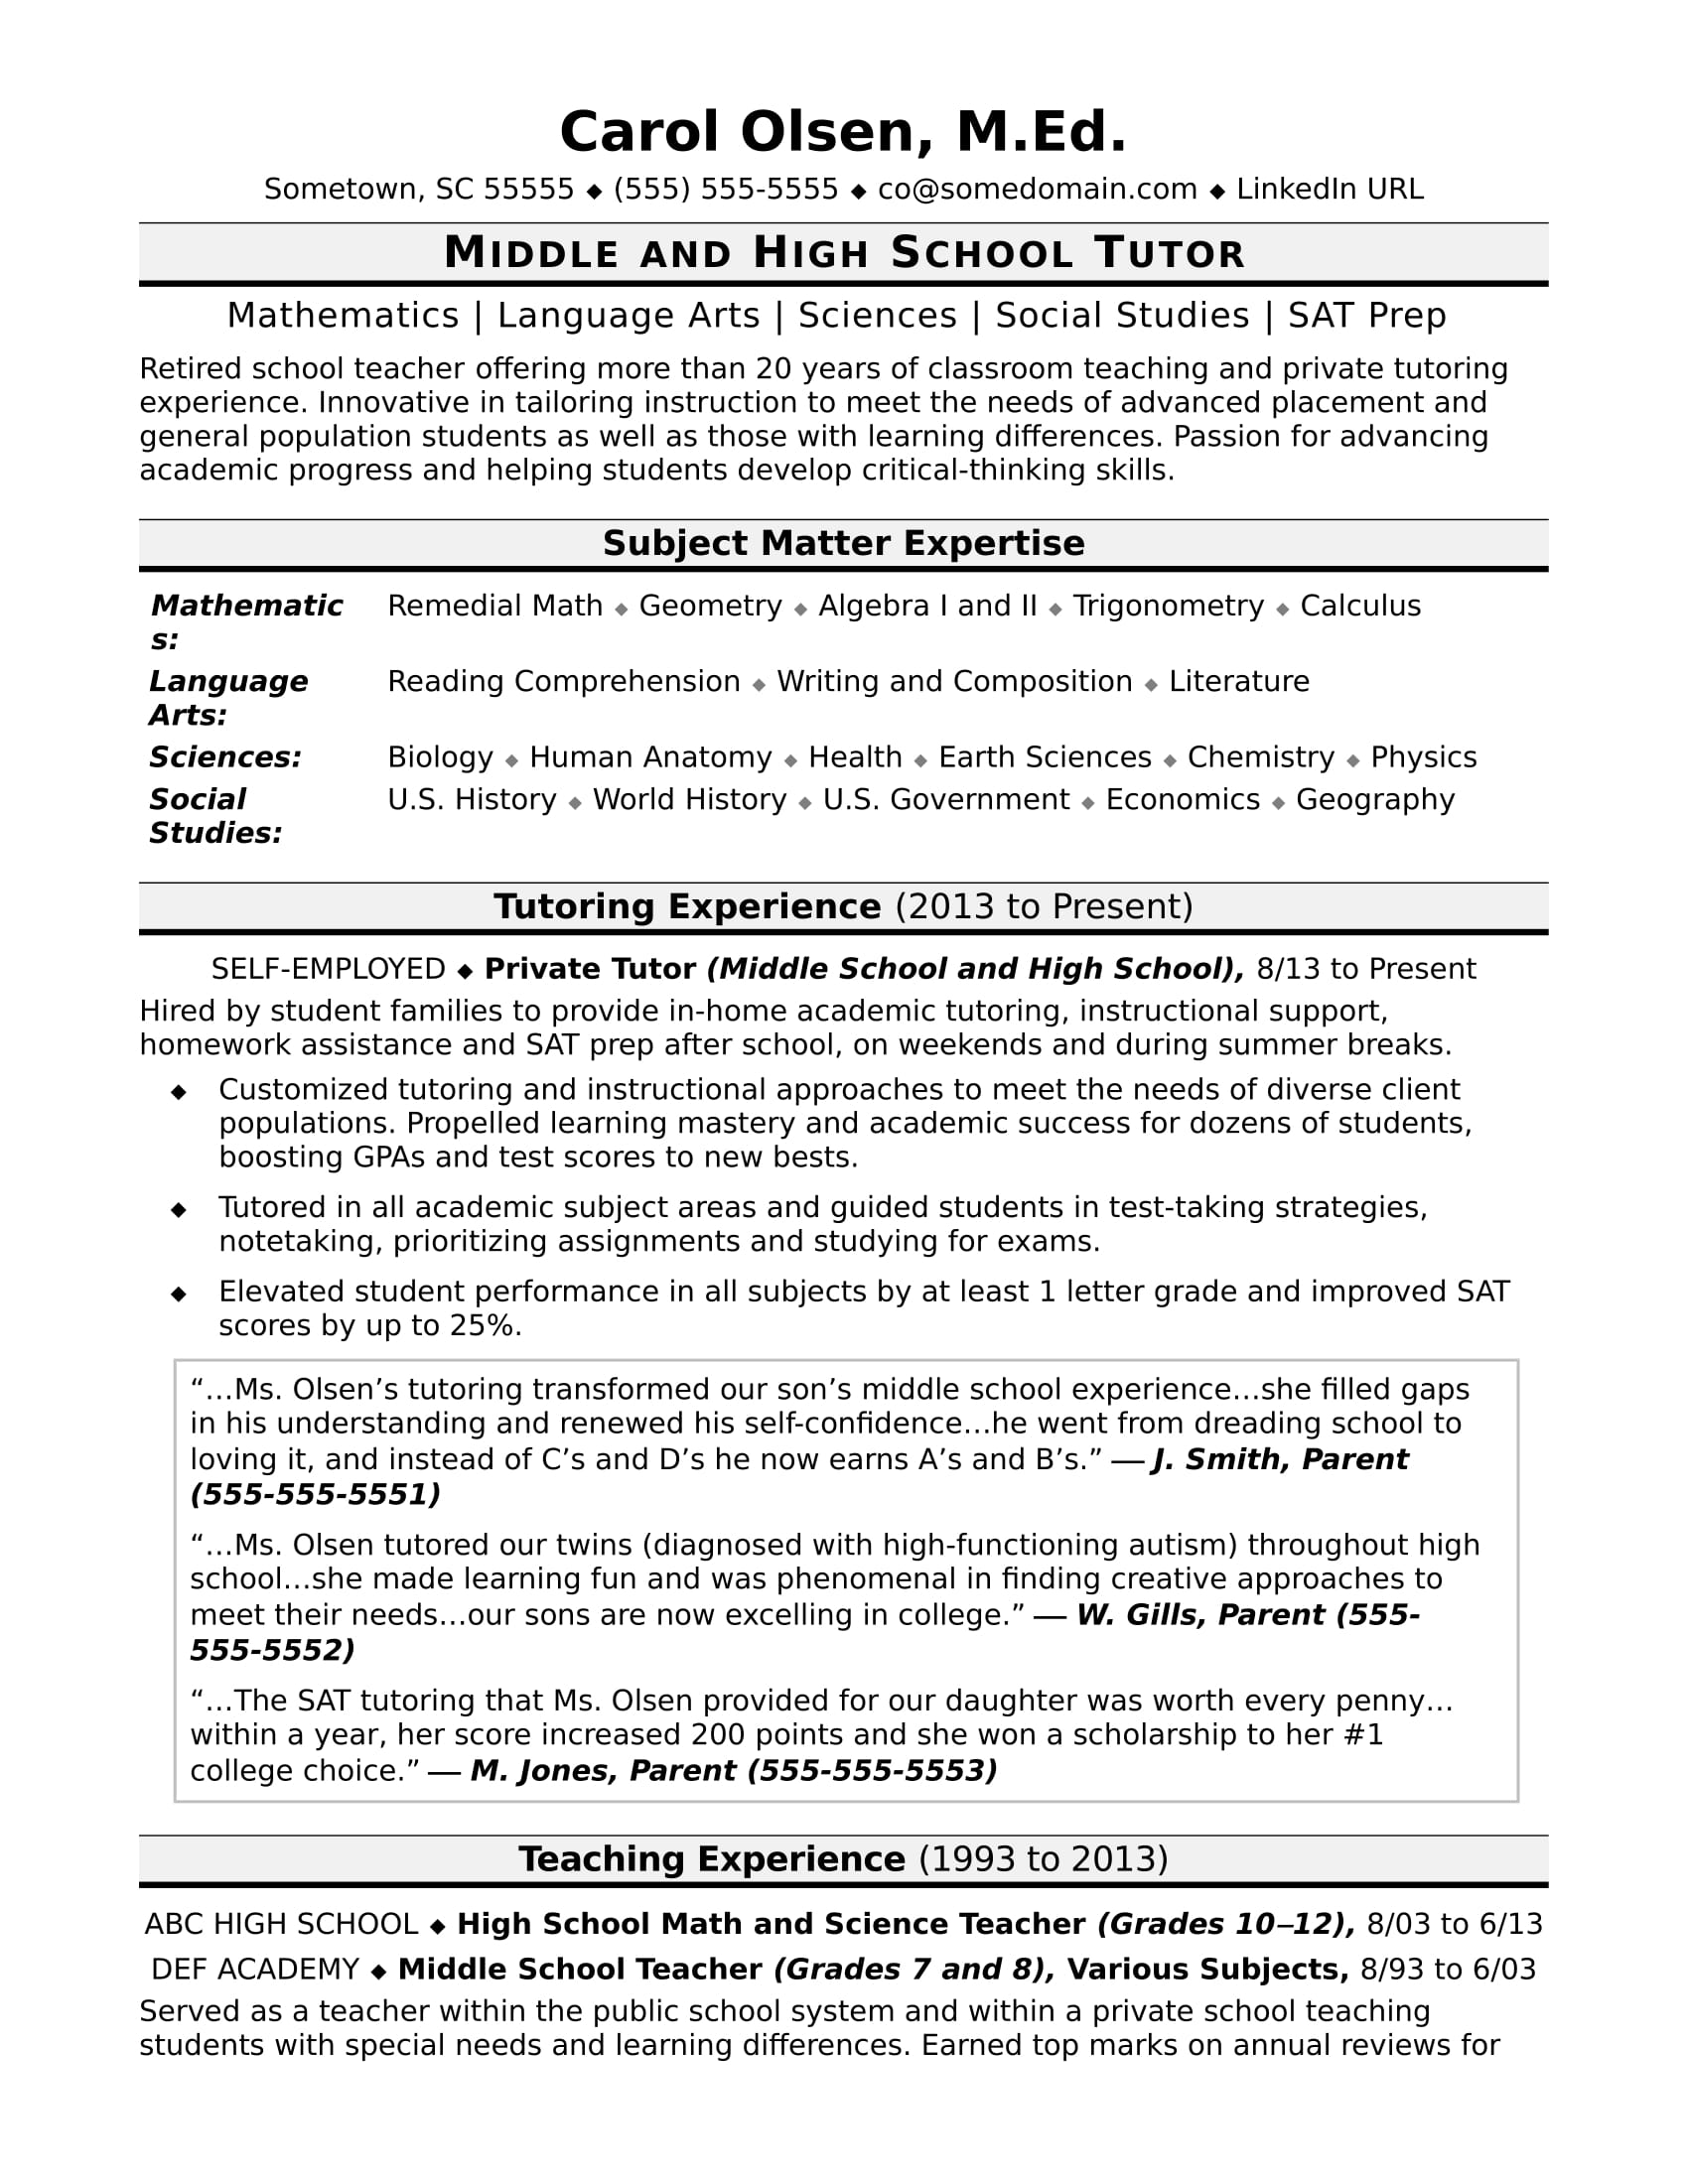 tutor resume sample - Tutor Sample Resume